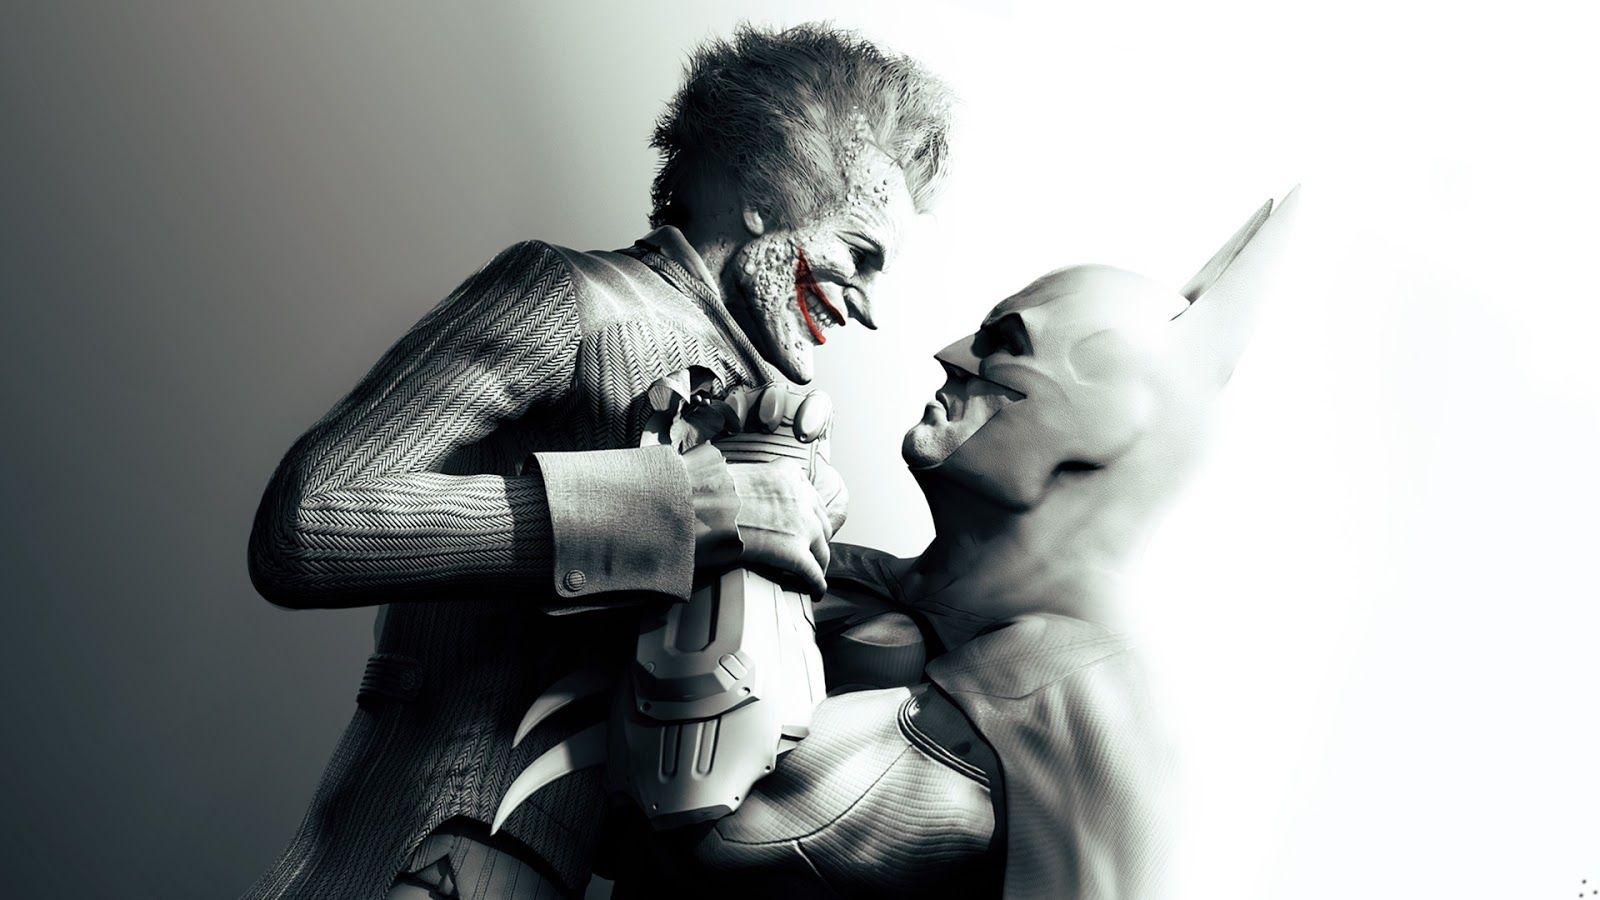 Batman Joker Wallpaper Quality HD Images ZZ